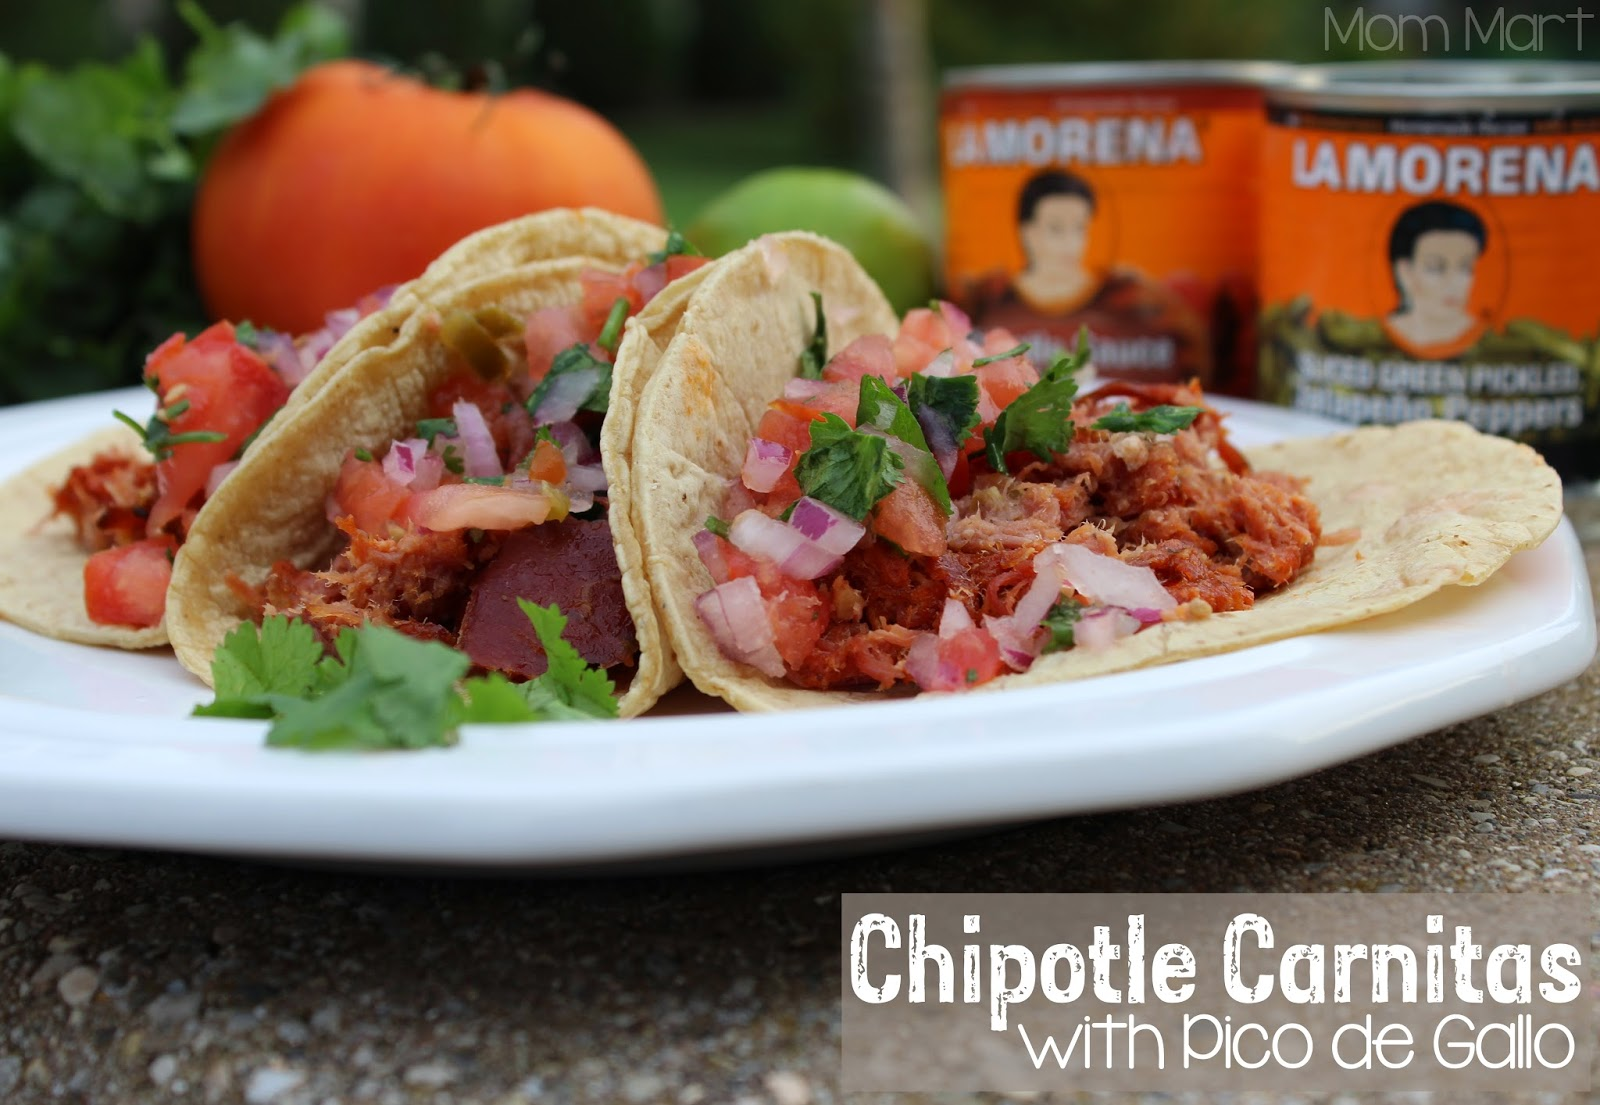 Chipotle Carnitas and Homemade Pico de Gallo Recipe with La Morena #VivaLaMoreno #shop #Foodie